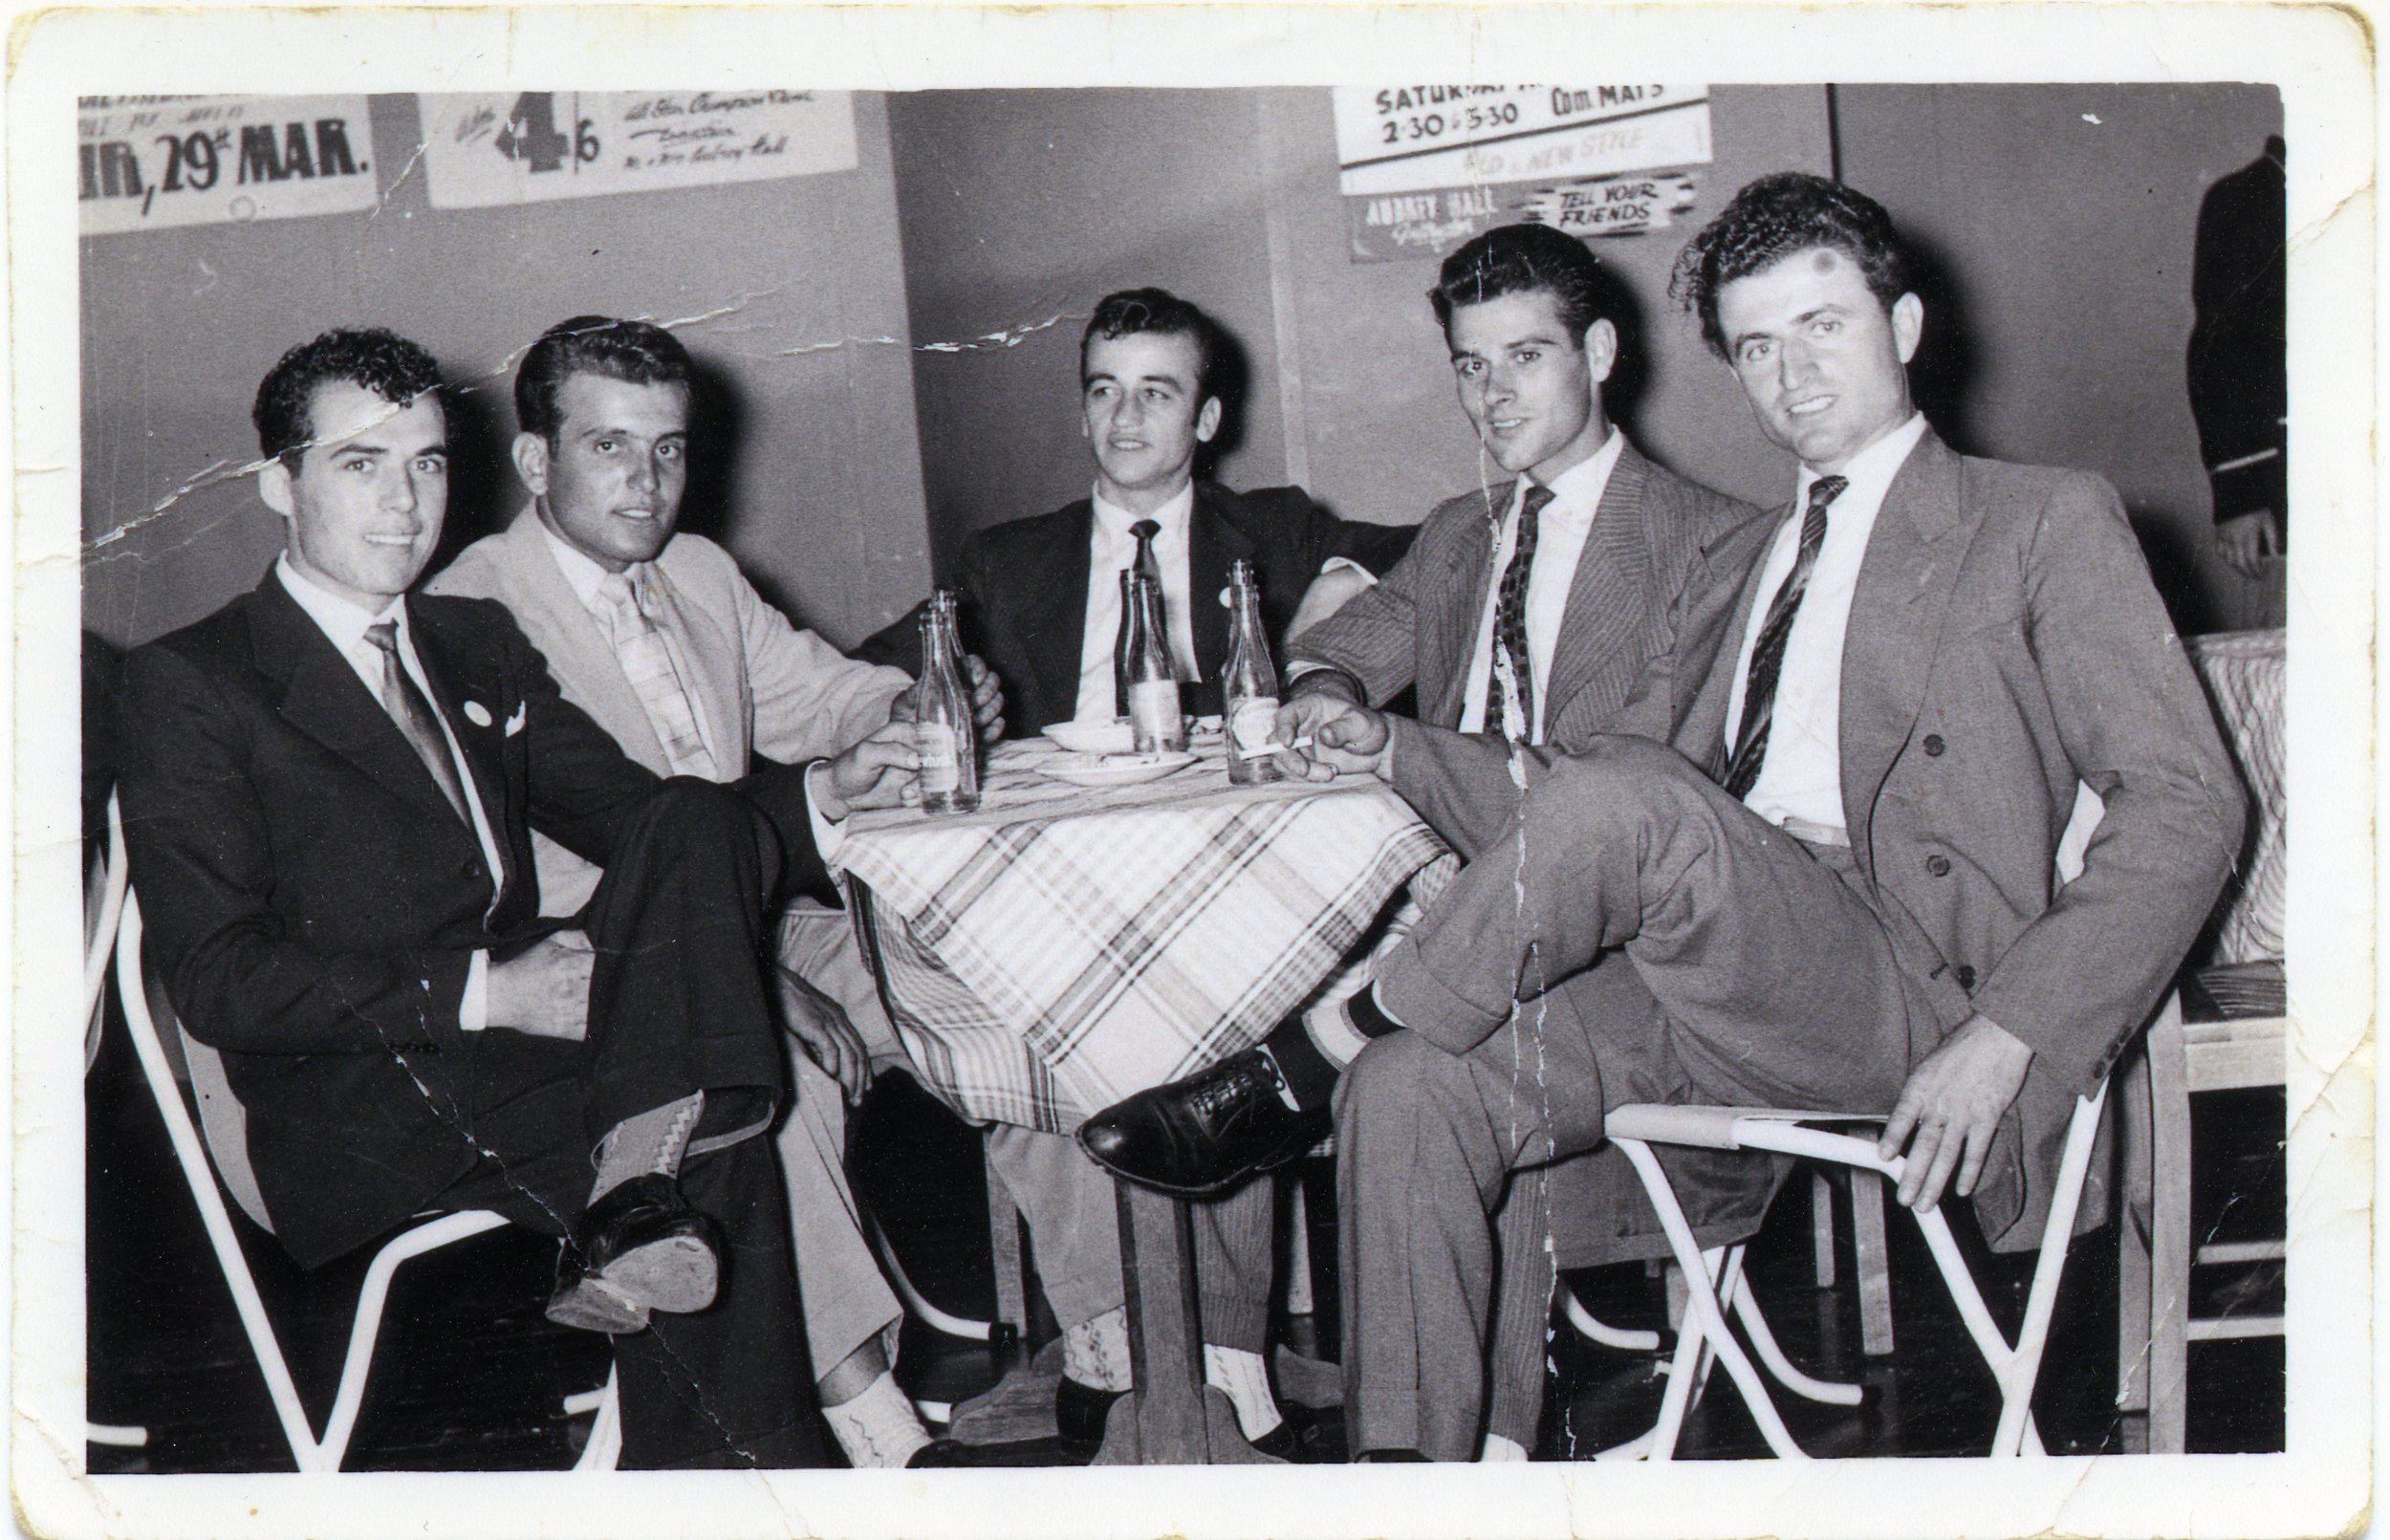 George Iosifidis (second left) and four of his companions in a restaurant on Hindley Sreet in about 1956. George came to Australia from Greece in 1955, aged 20, and worked in Port Adelaide. In 1959 he met an English girl, Lorraine, who later became his wife.  PN05943 Migration Museum Collection